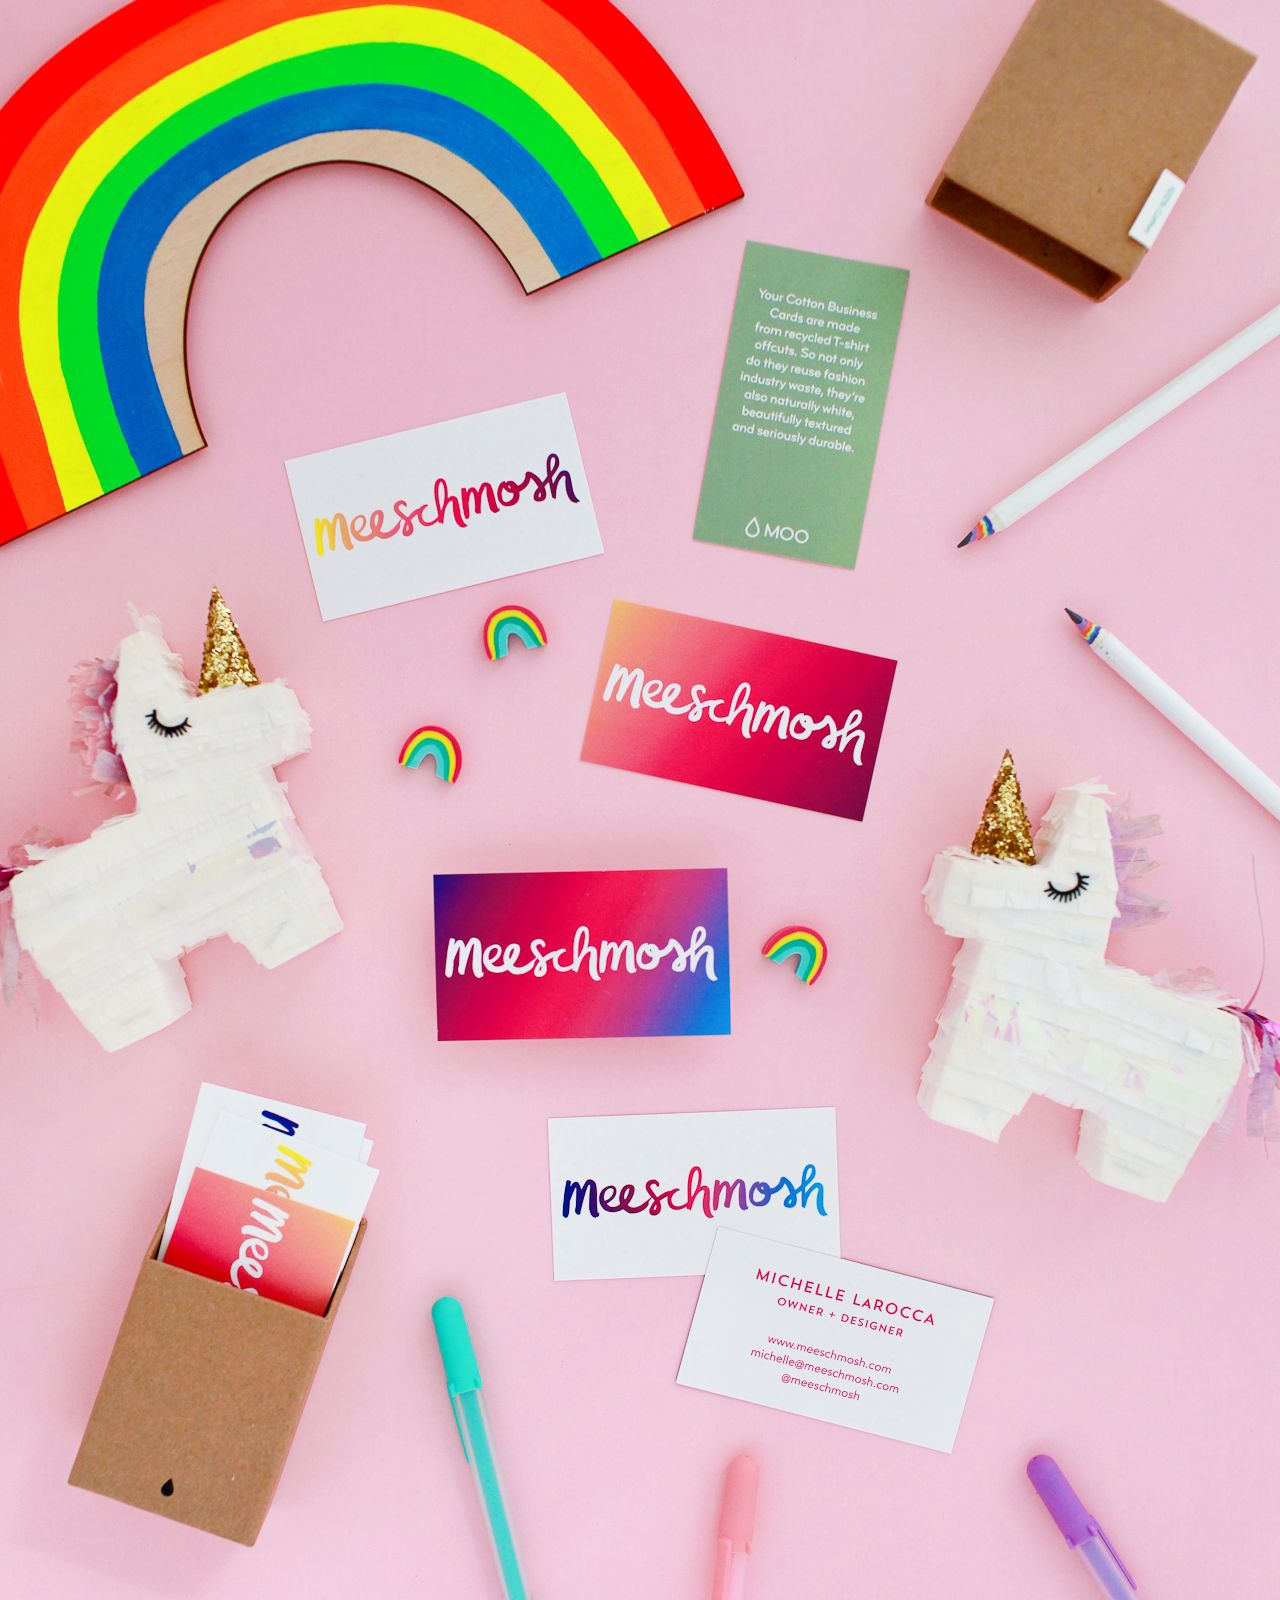 Colorful and creative business cards with moo recycled